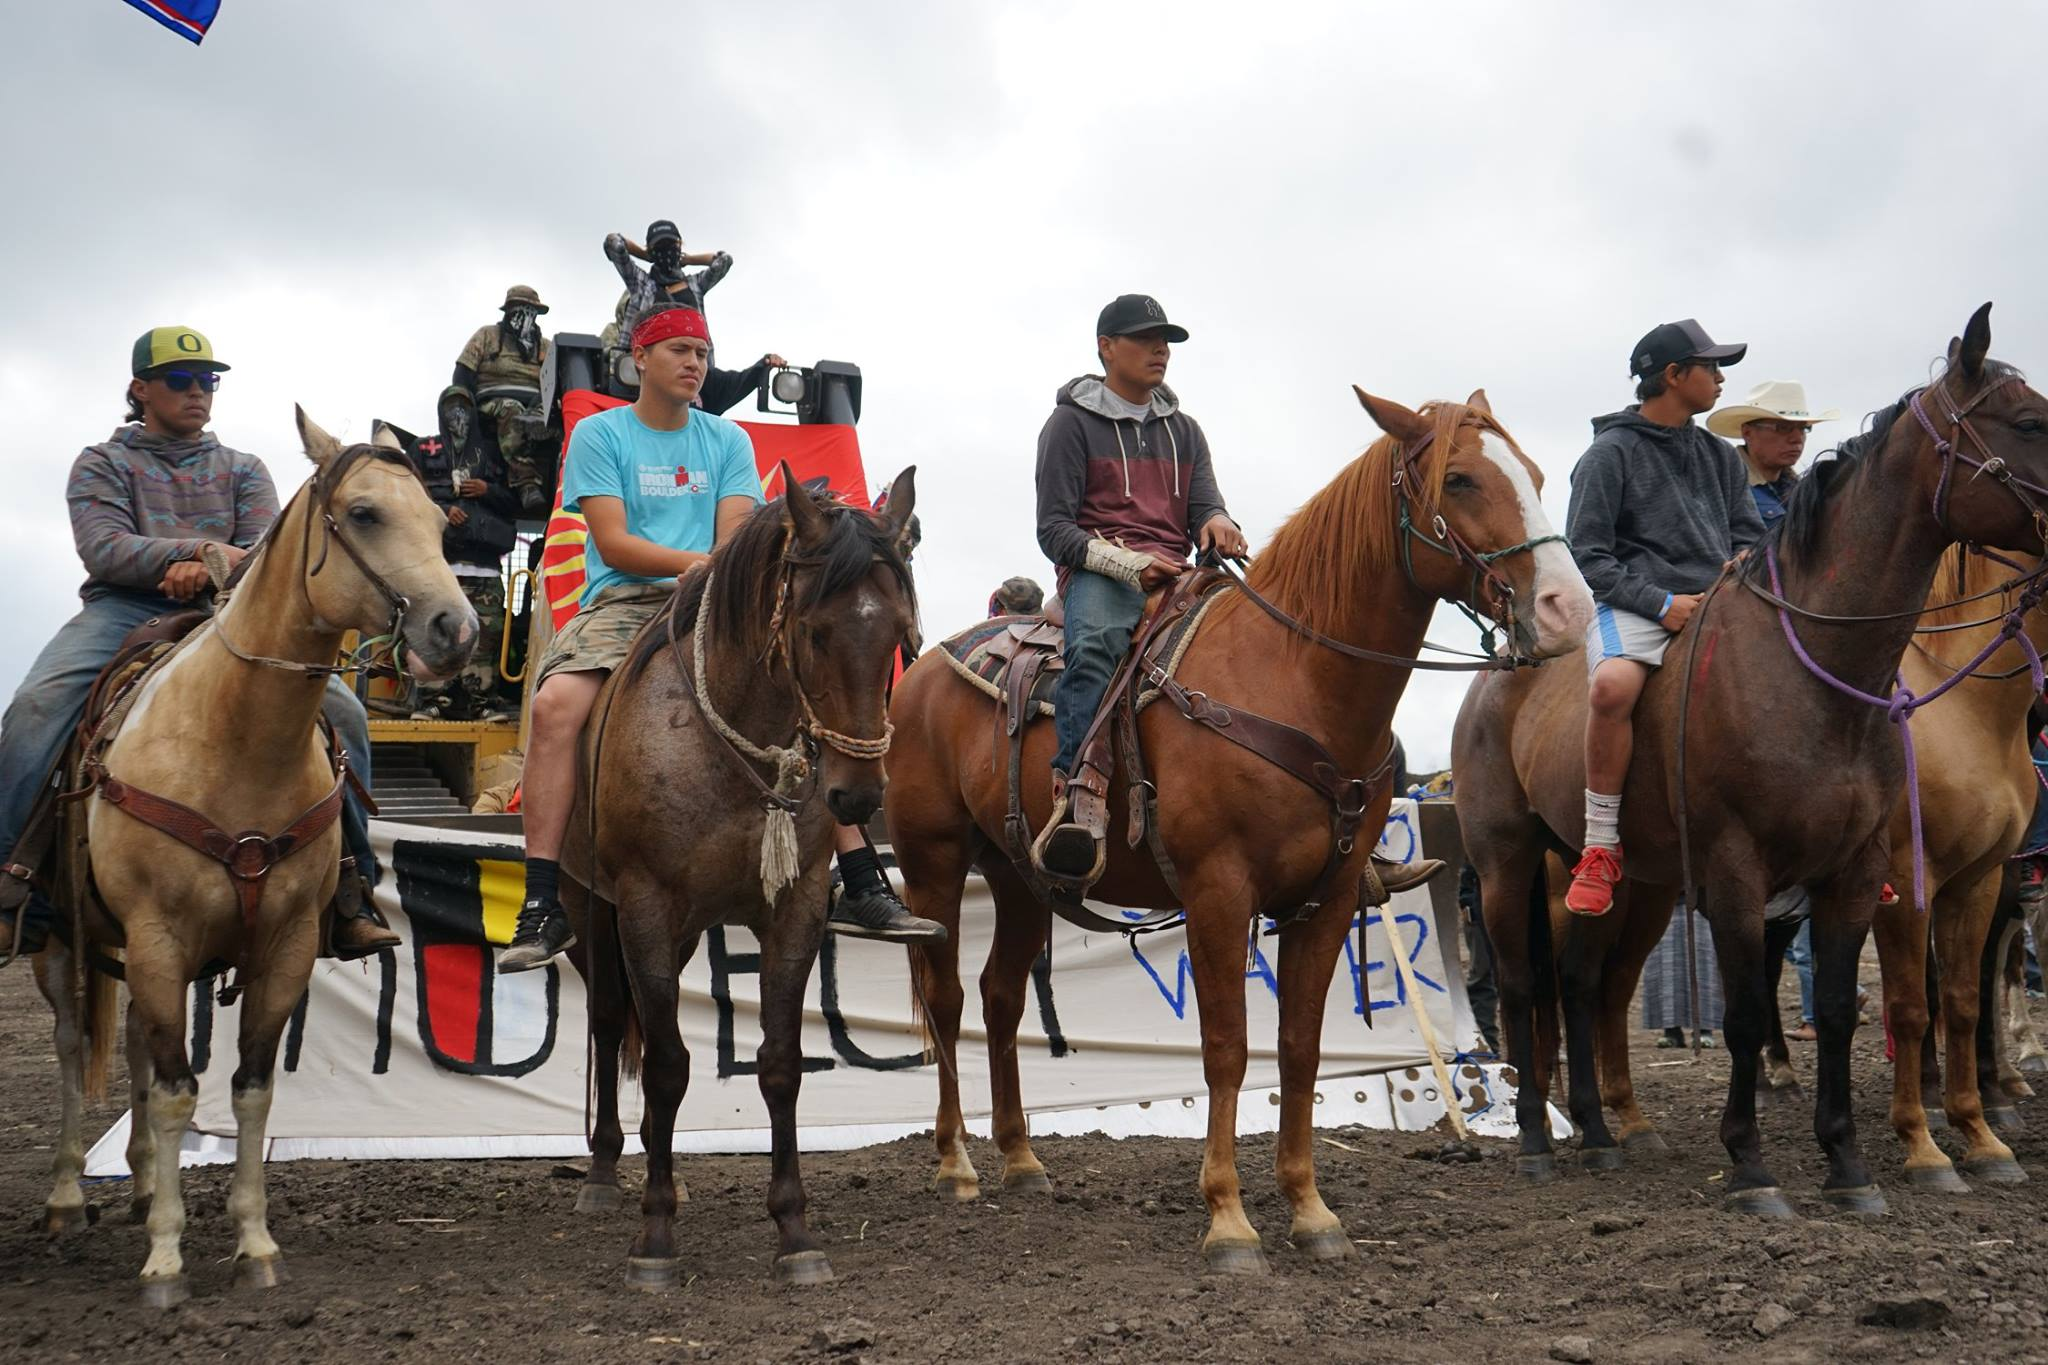 Standing Rock Sioux Tribe 'disappointed' with decision in #NoDAPL fight